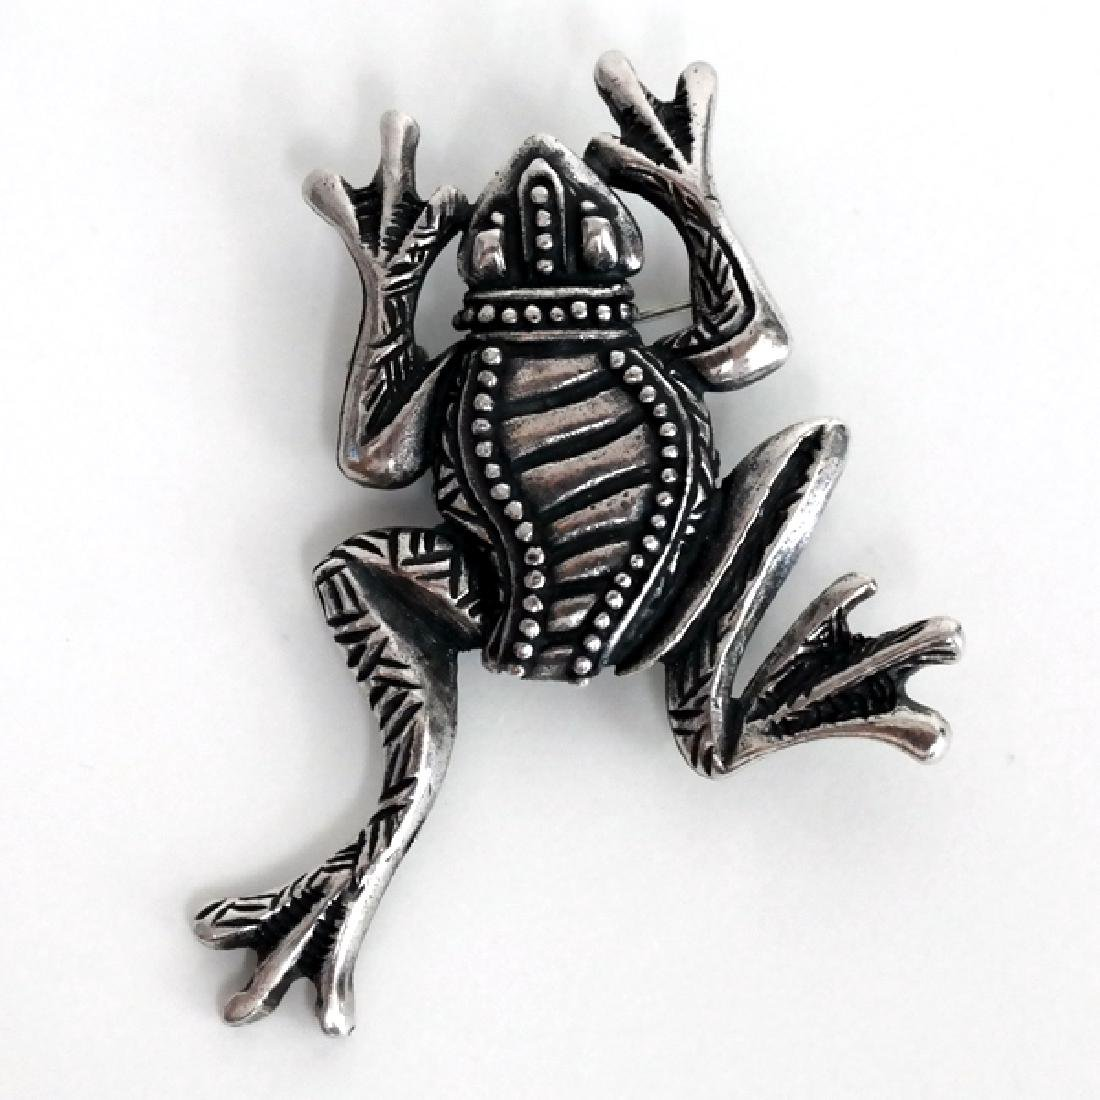 Antique oxidized silver look FROG shape pin brooch